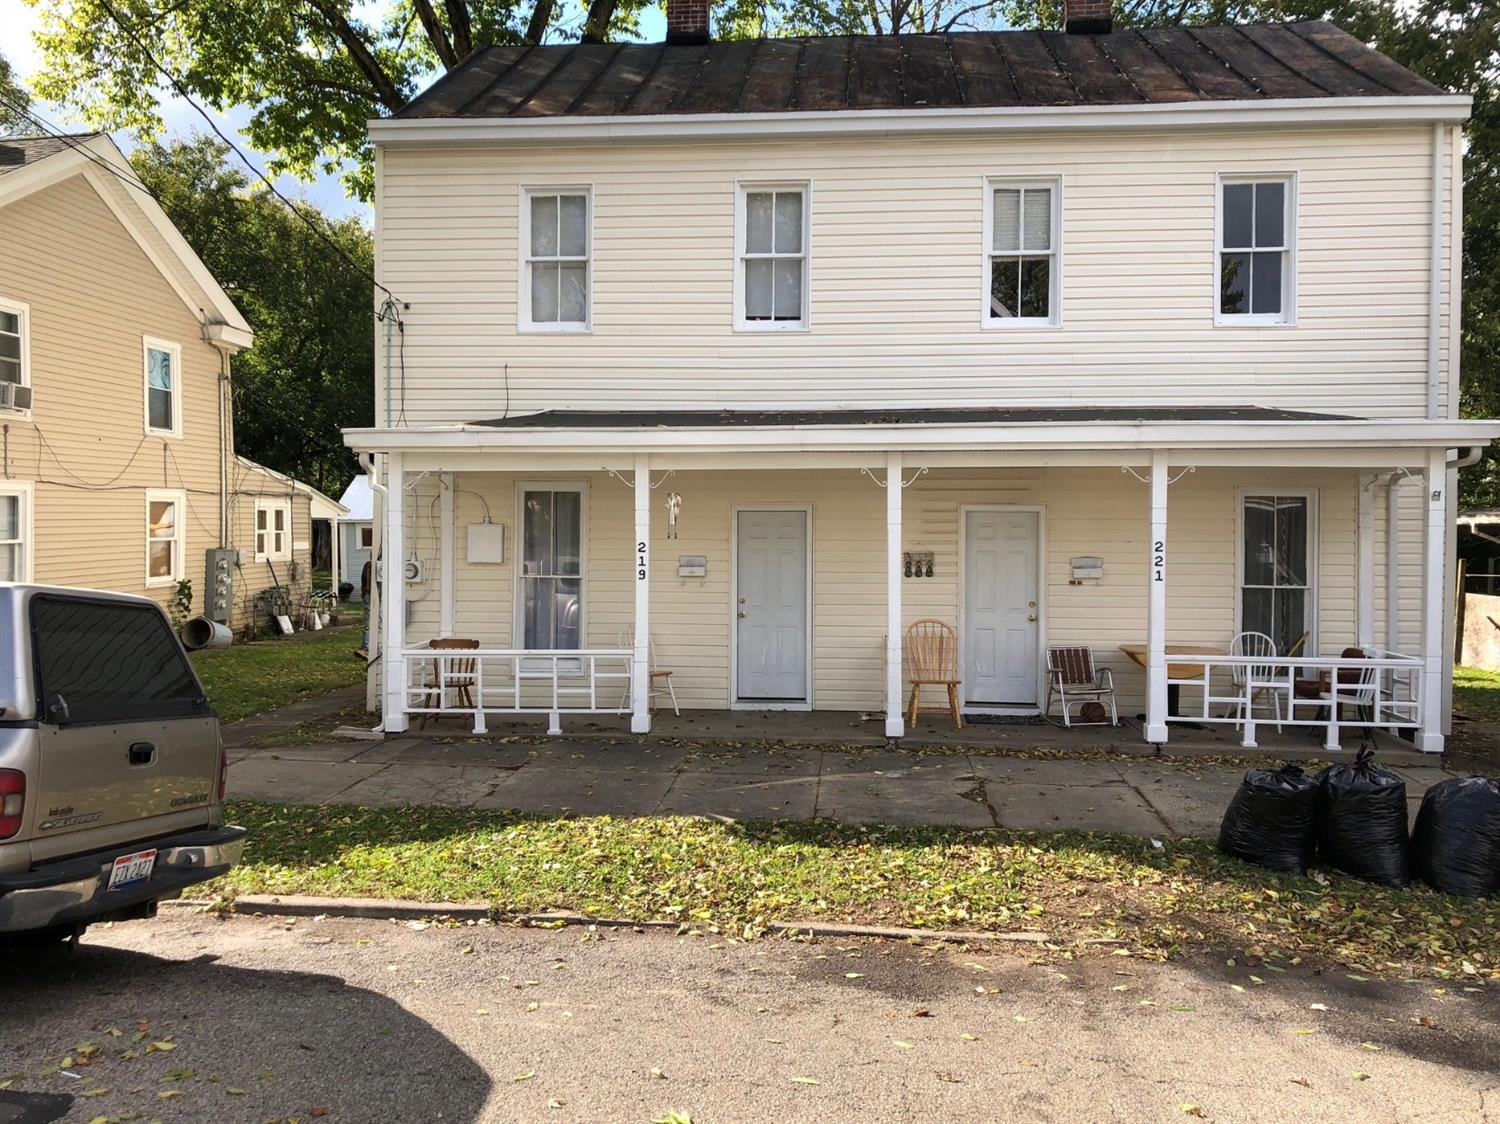 Property for sale at 219 N Cherry Street, Lebanon,  OH 45036